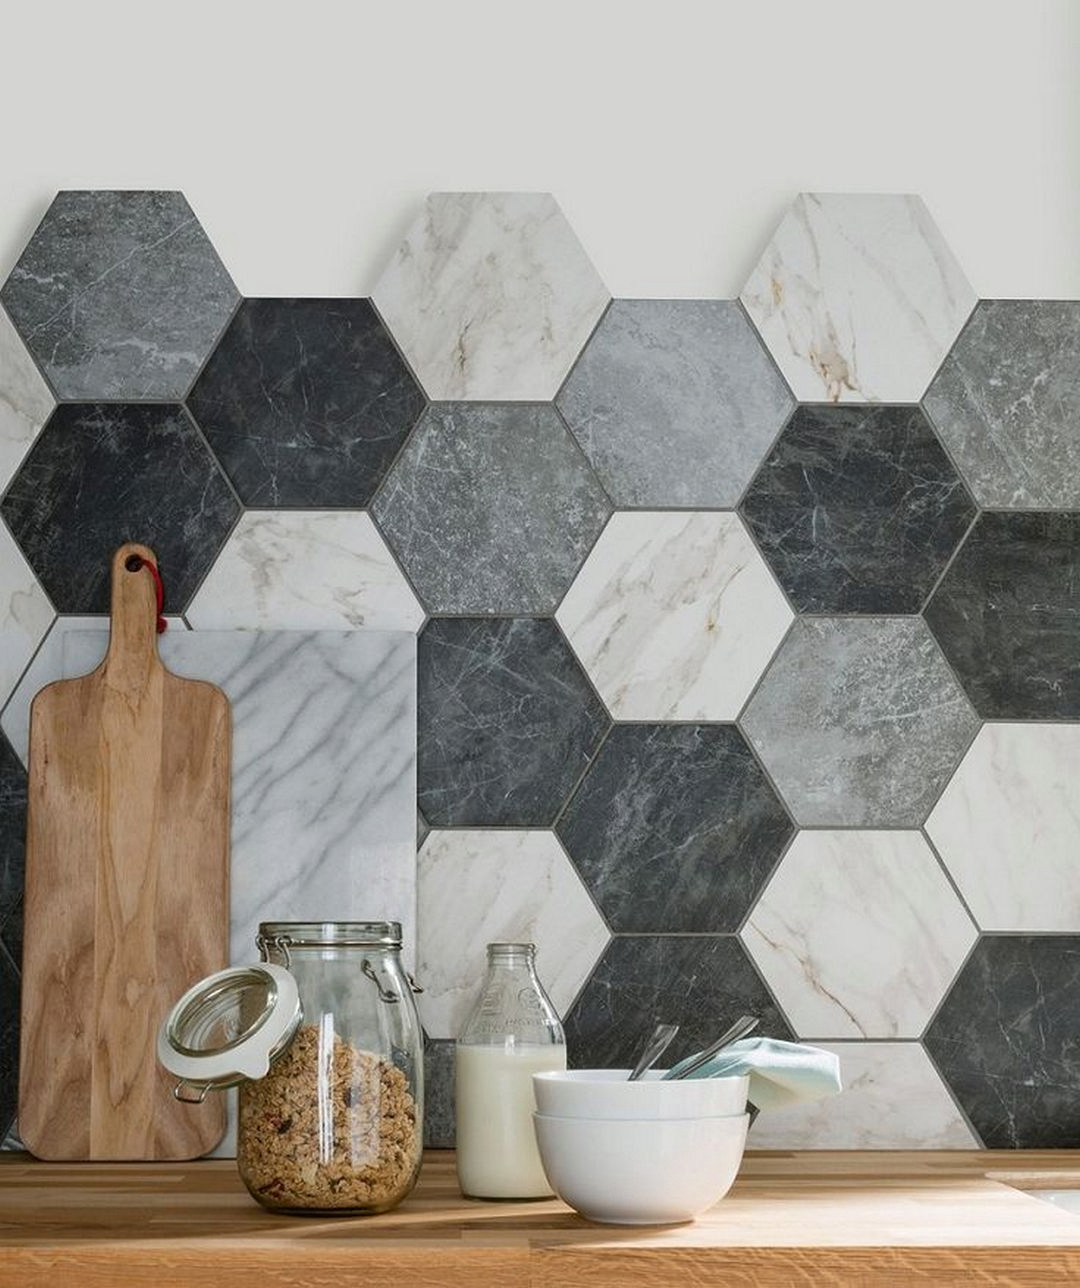 tiles wall canada d backsplash lowes kitchen co curlyque